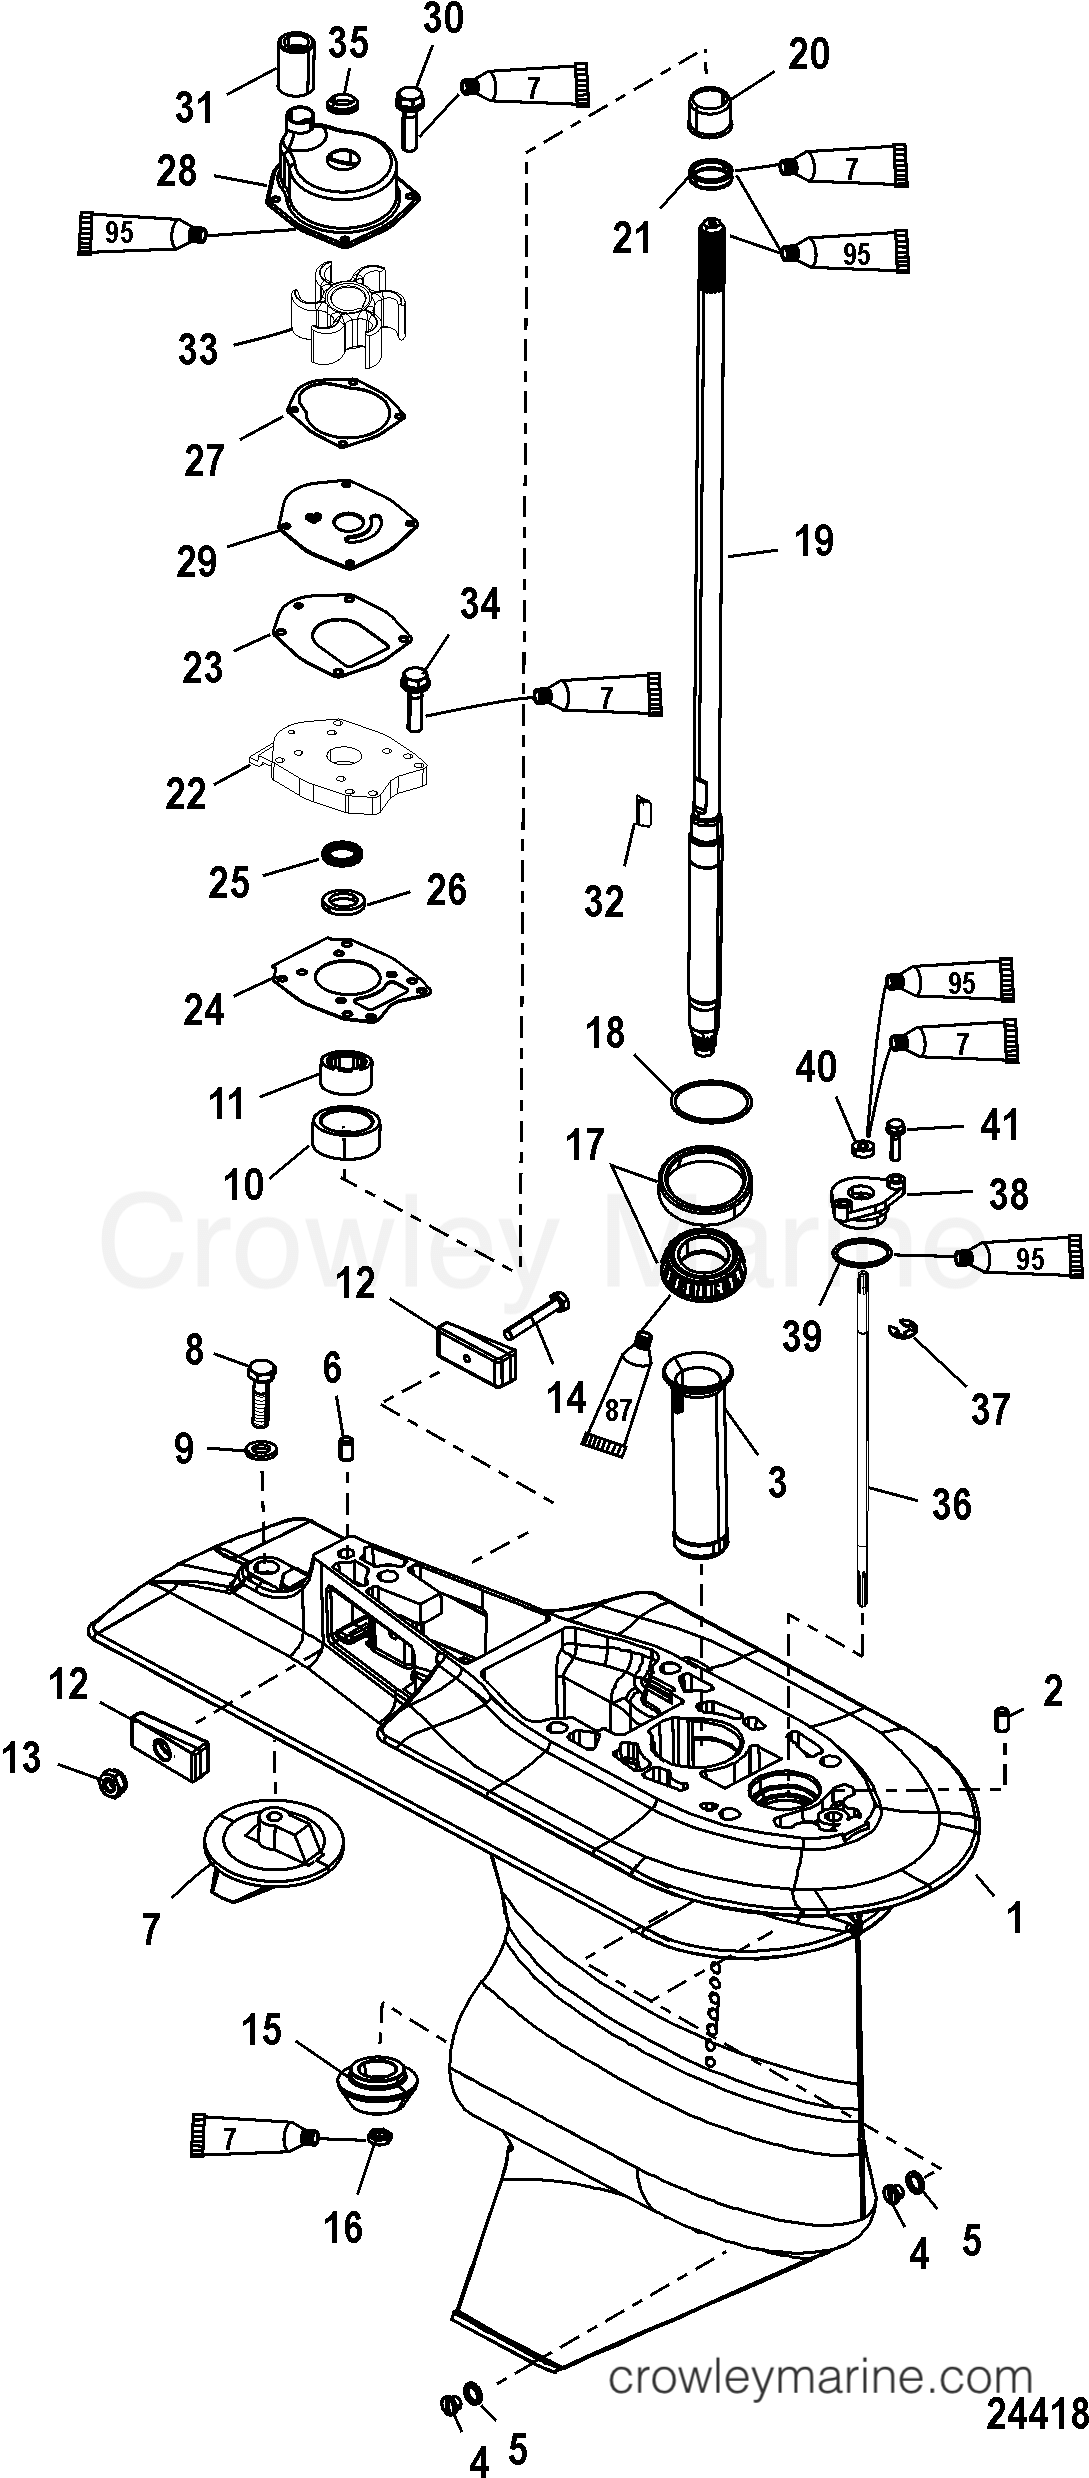 Serial Range Mariner Outboard 40 EFI (4 CYL.)(4-STROKE) - 0P401000 THRU 0P515896 [BEL] GEAR HOUSING(DRIVESHAFT-2.33:1)(SERIAL #1C033811 & UP) section